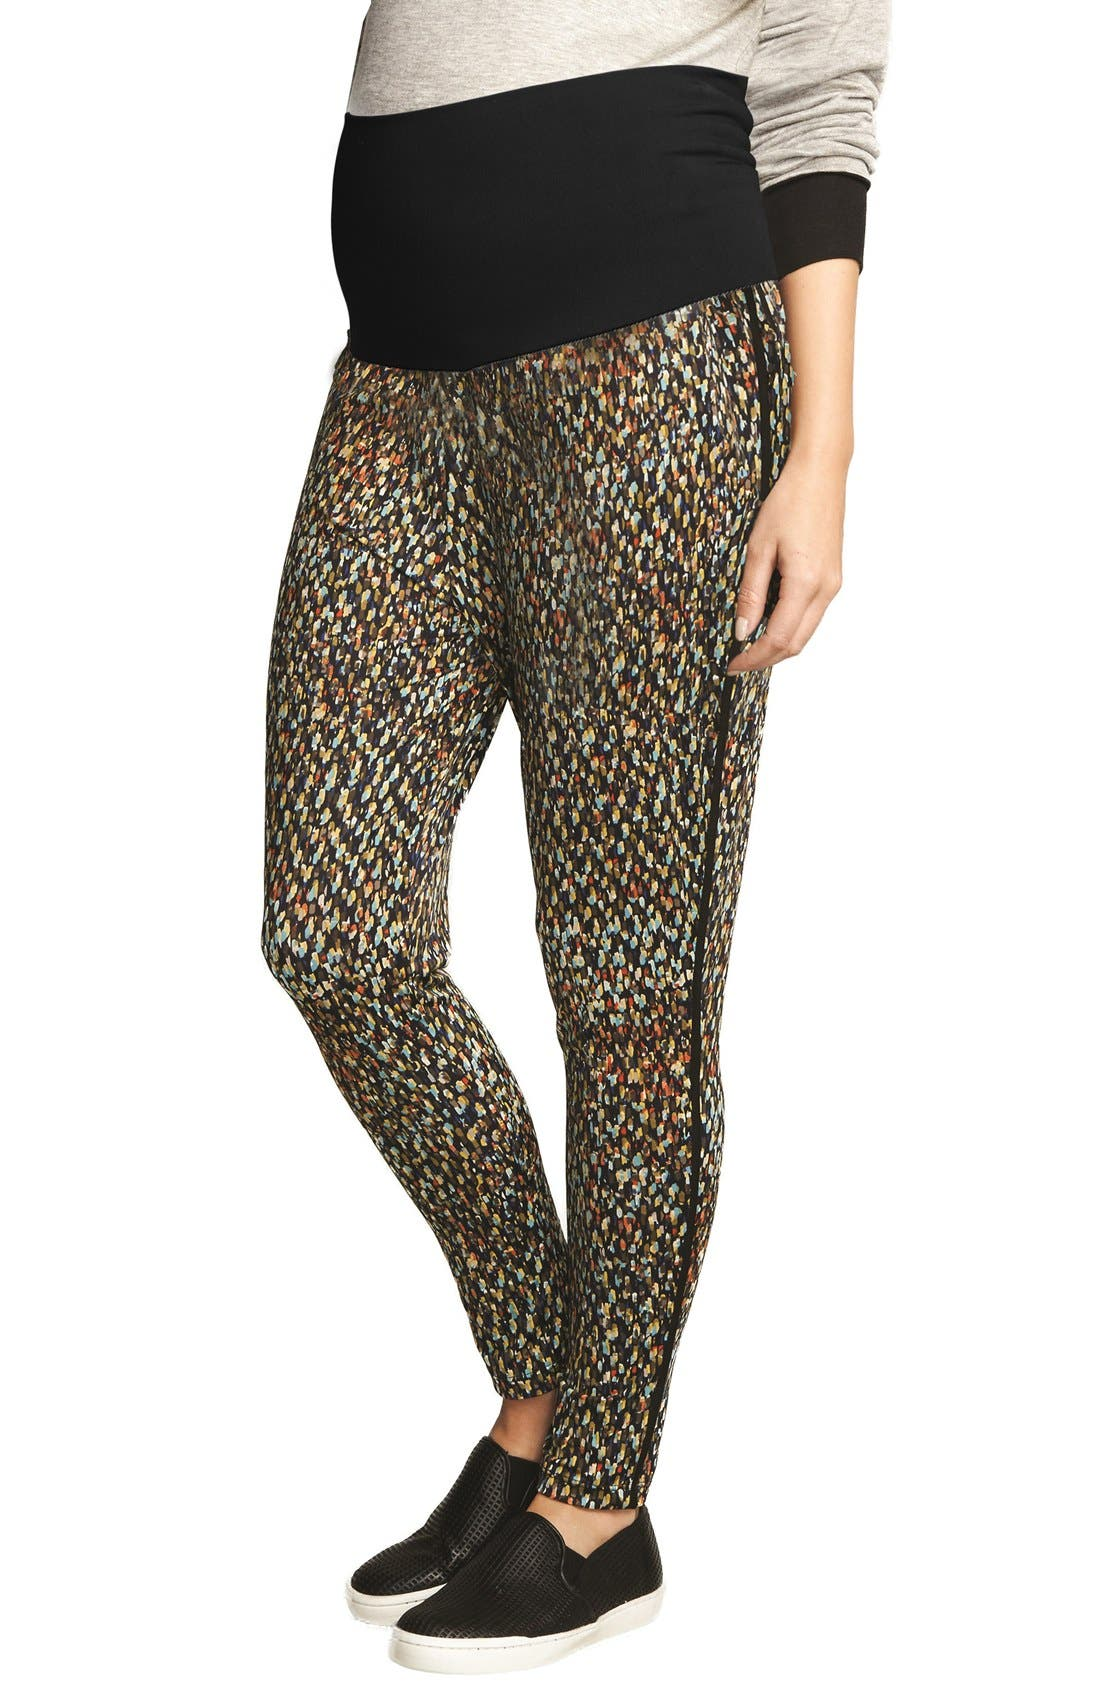 THE URBAN MA Print Maternity Pants